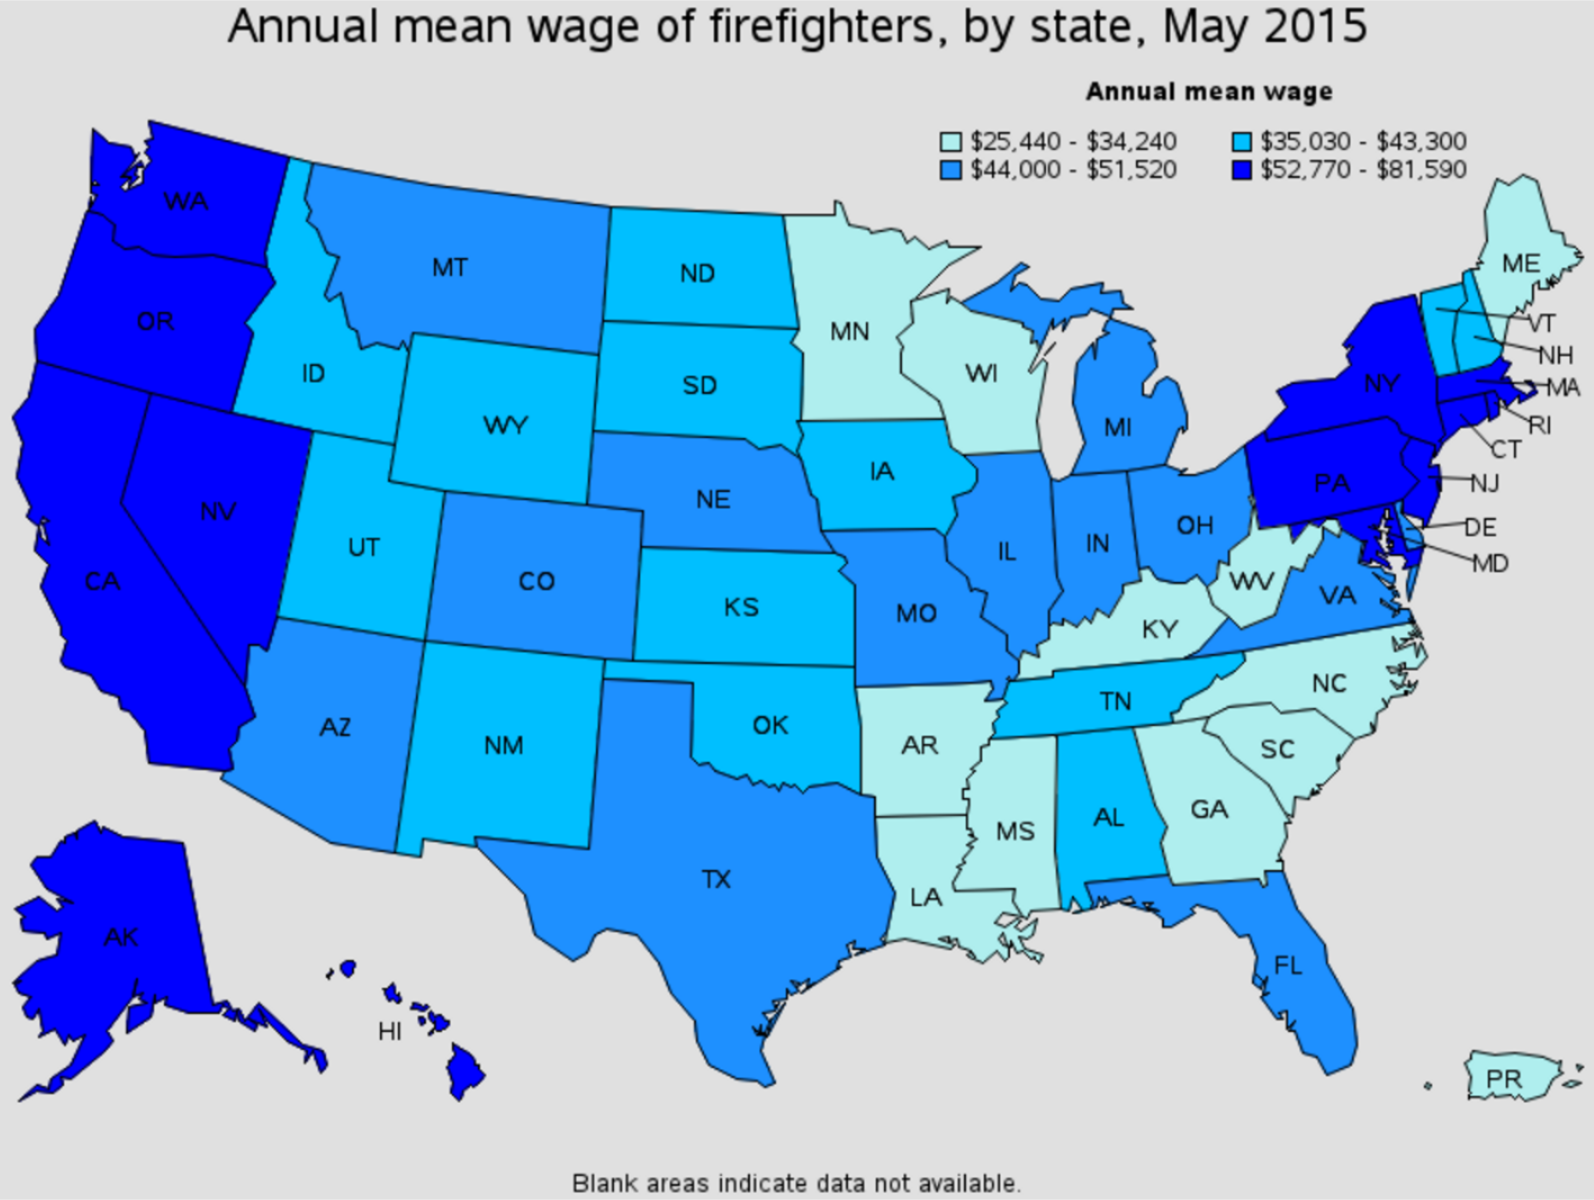 firefighter average salary by state Wheat Ridge Colorado